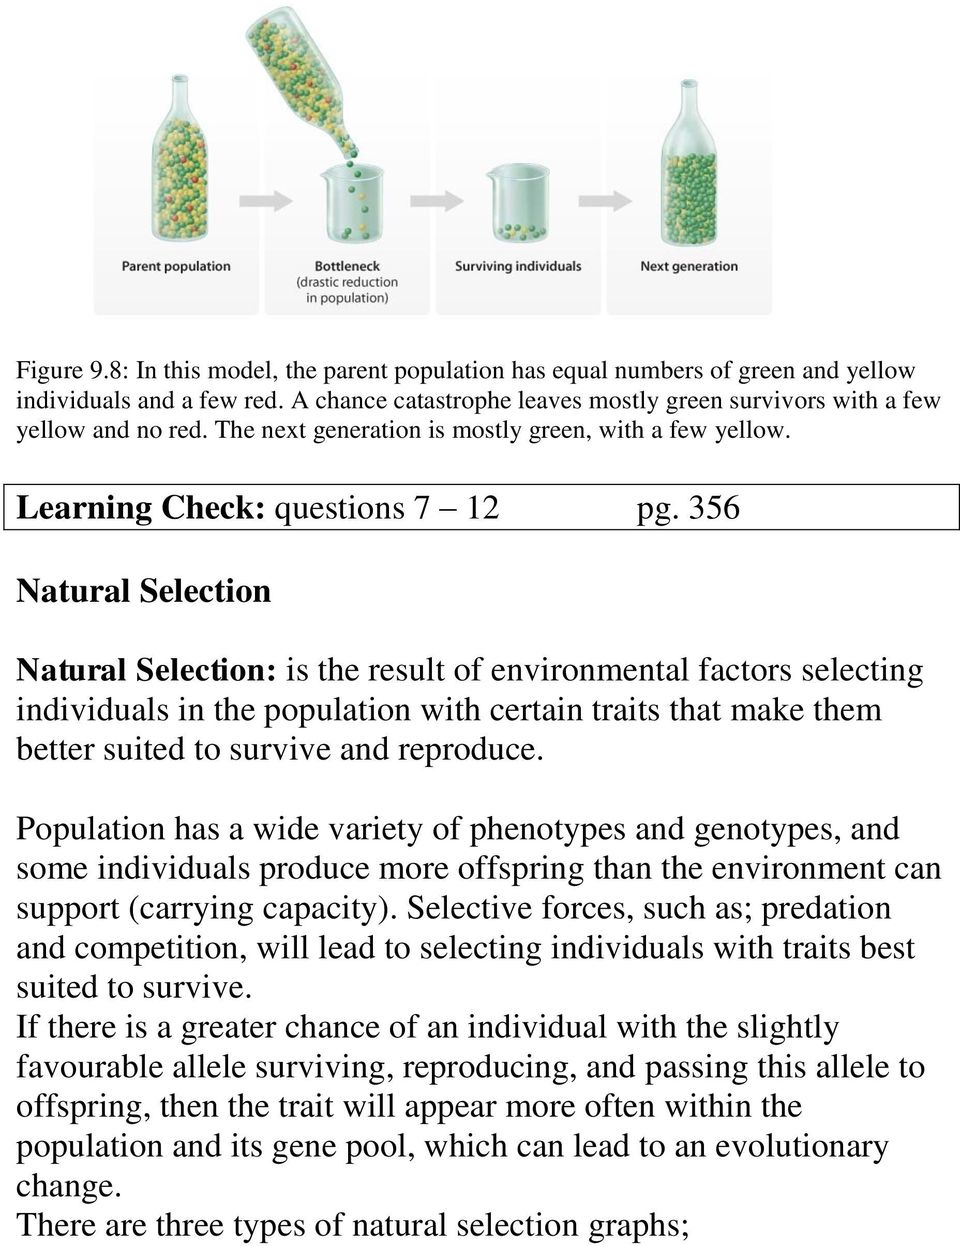 356 Natural Selection Natural Selection: is the result of environmental factors selecting individuals in the population with certain traits that make them better suited to survive and reproduce.